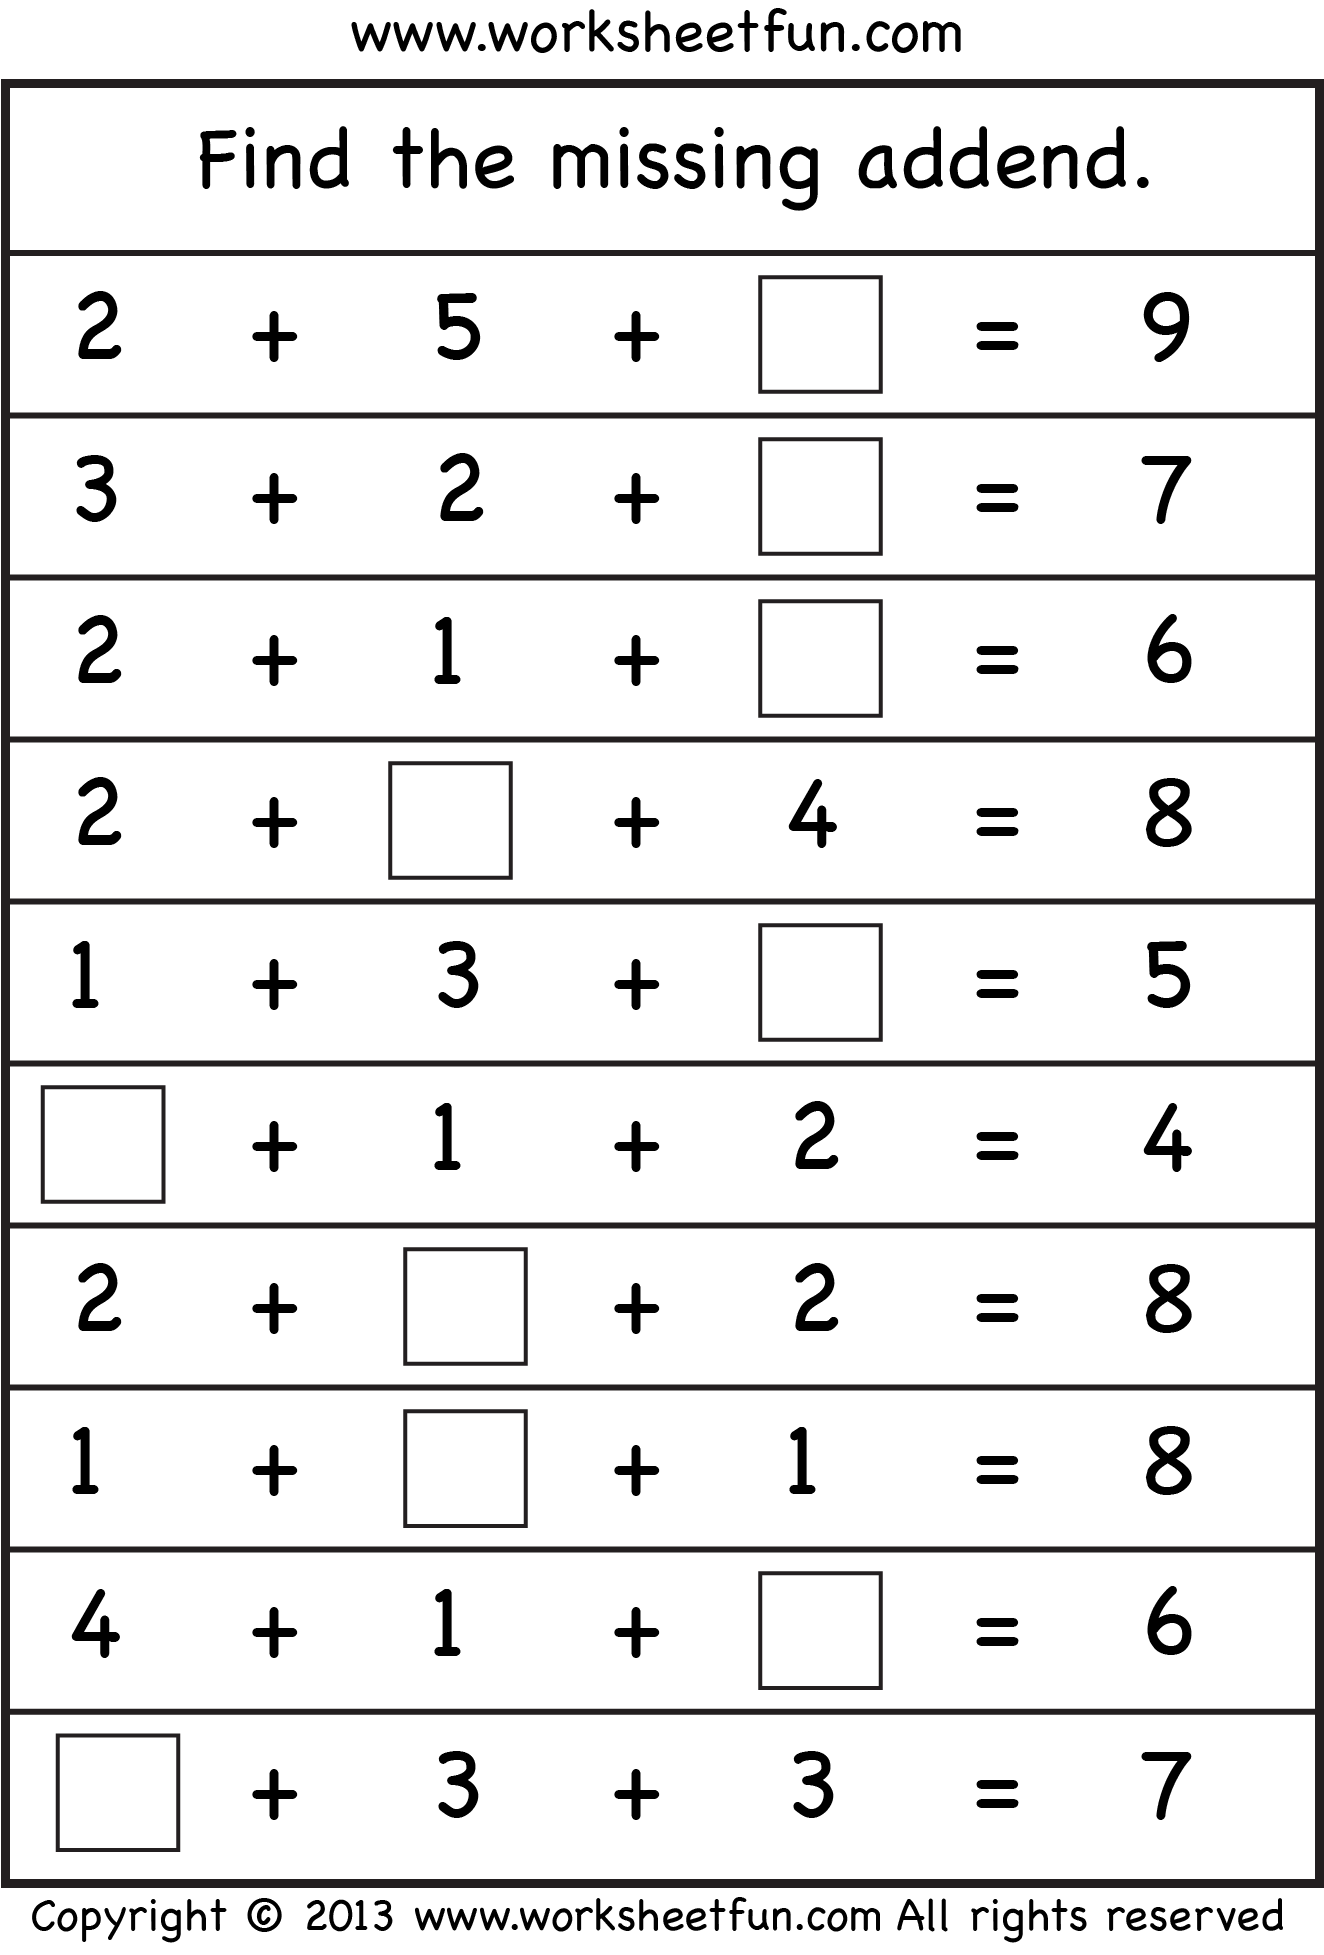 Worksheetfun Com 2nd : Lots of math worksheets to print out school